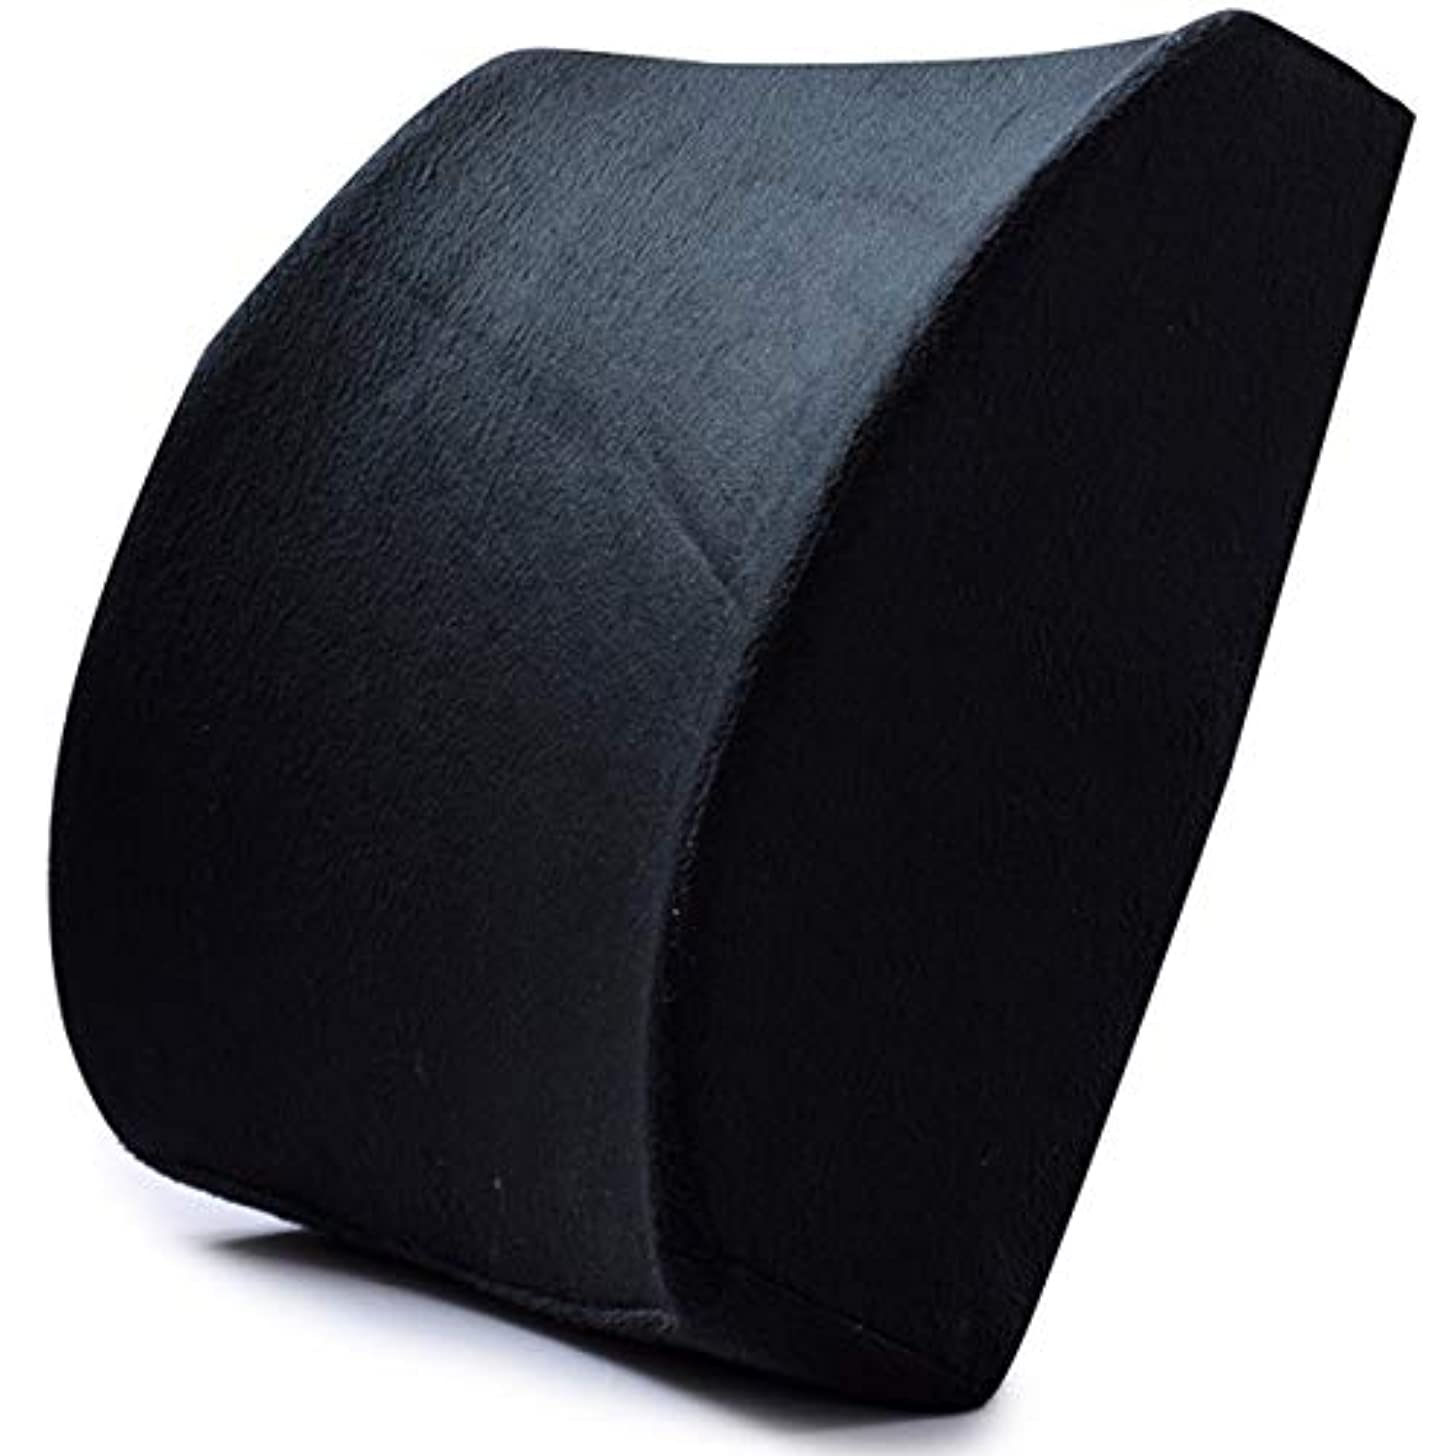 代わって整理するシャンプーMemory Foam Lumbar Support Waist Cushion Pillow For Chairs in the Car Seat Pillows Home Office Relieve Pain